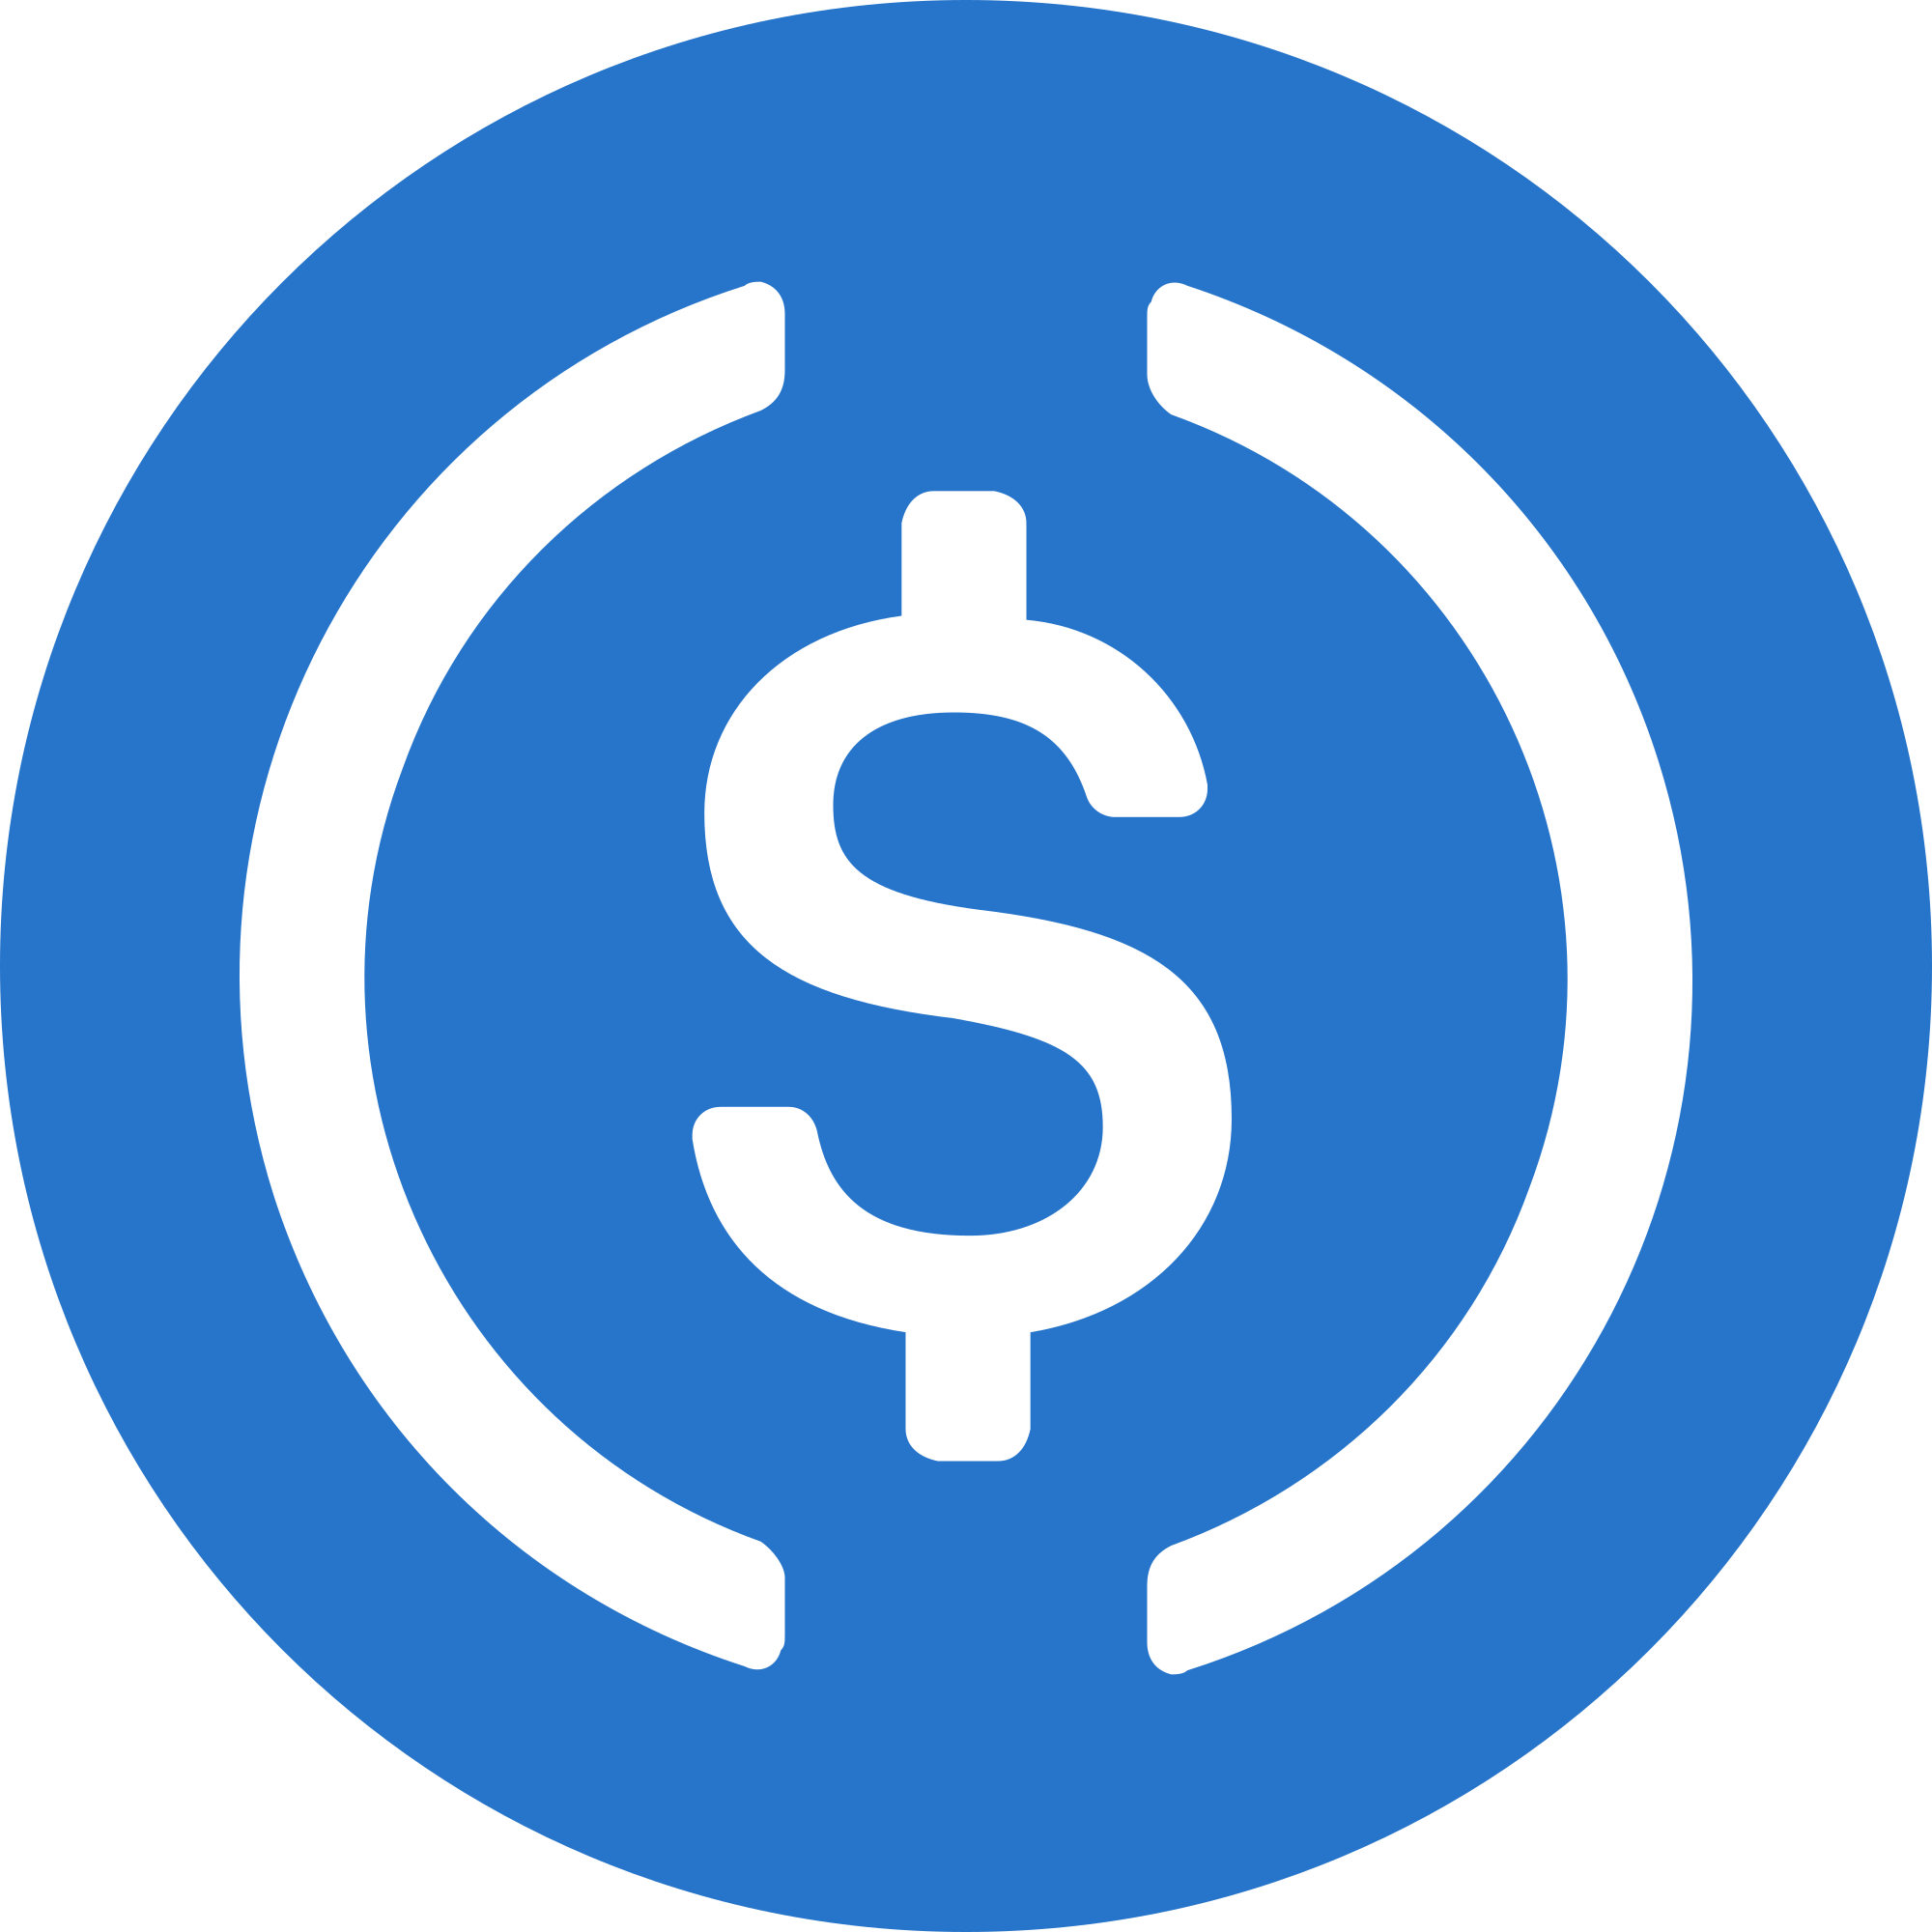 USD Coin (USDC) Logo .SVG and .PNG Files Download.